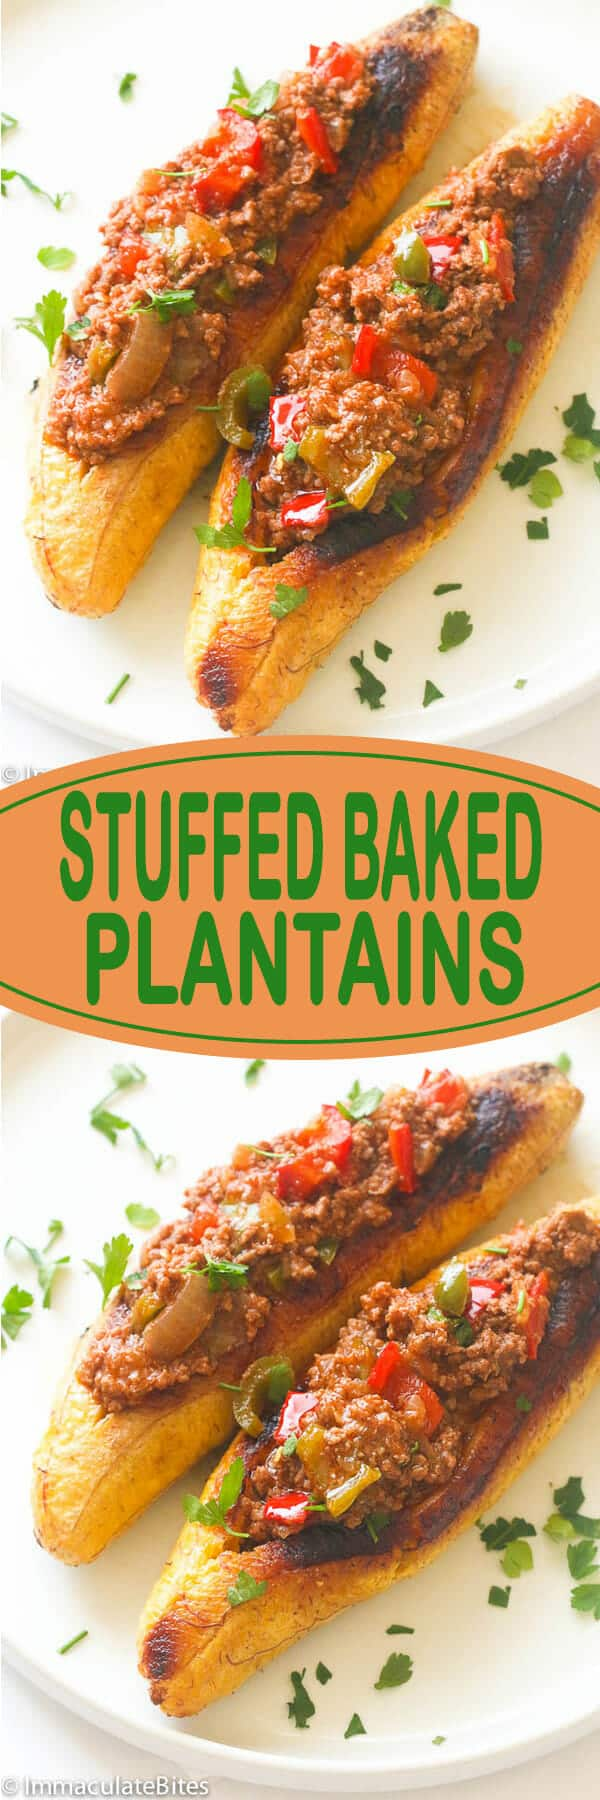 Roasted plantains filled with seasoned ground meat, tomatoes, onions, bell pepper, and spices, topped with cheese for lunch, dinner or even breakfast- very comforting!